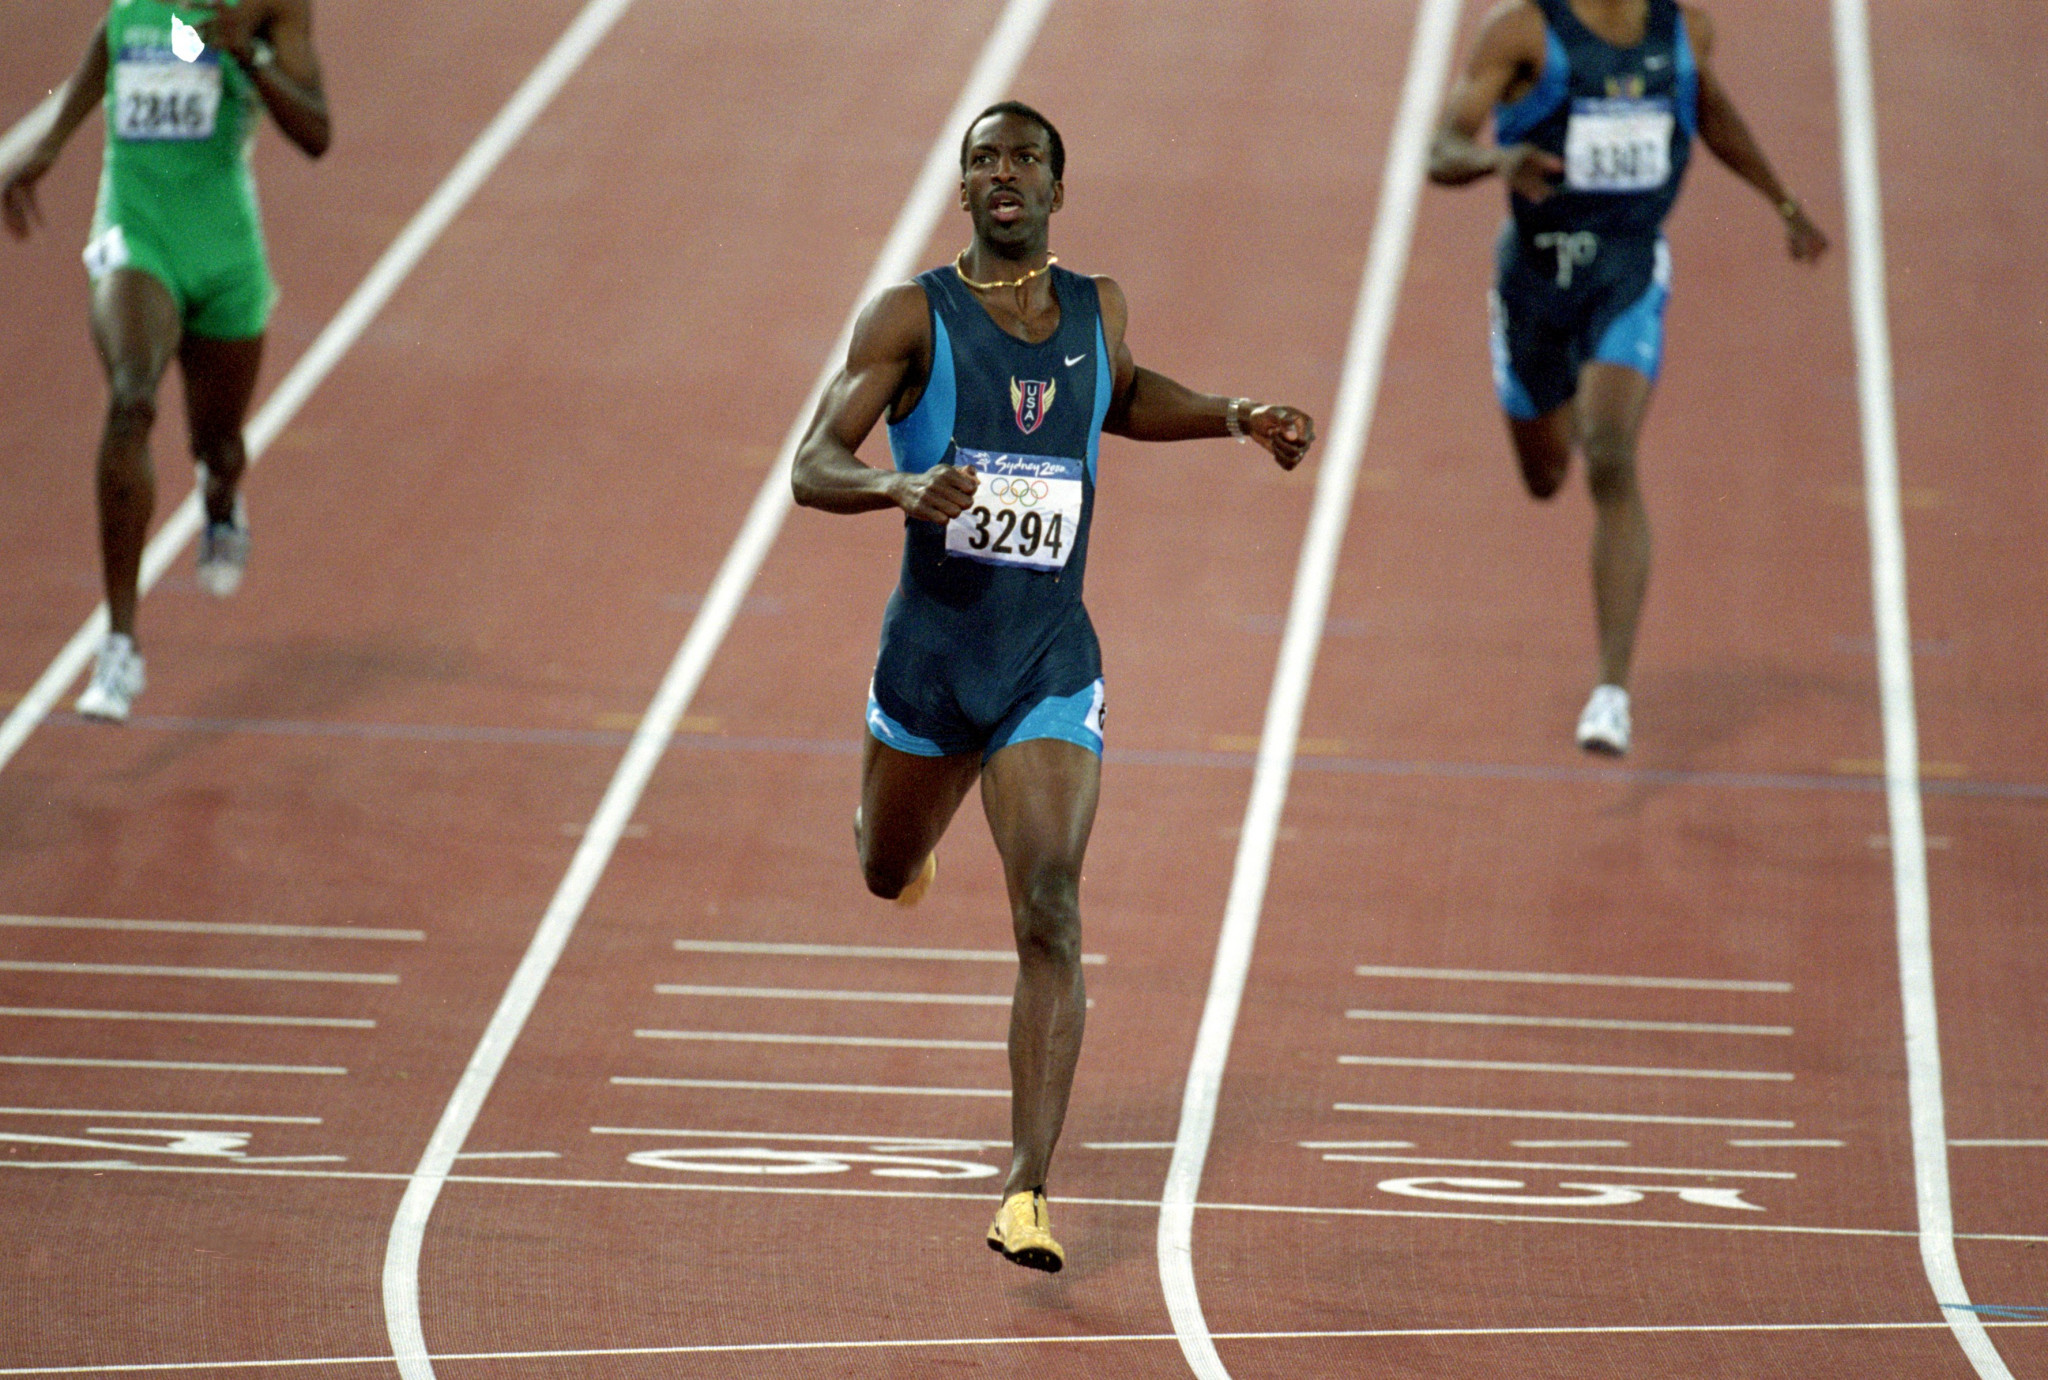 Four years after winning the 200 and 400m double at the Atlanta Olympics, American sprinter Michael Johnson ended his career by successfully defending his 400m title at the Sydney 2000 Olympics - on Magic Monday ©Getty Images